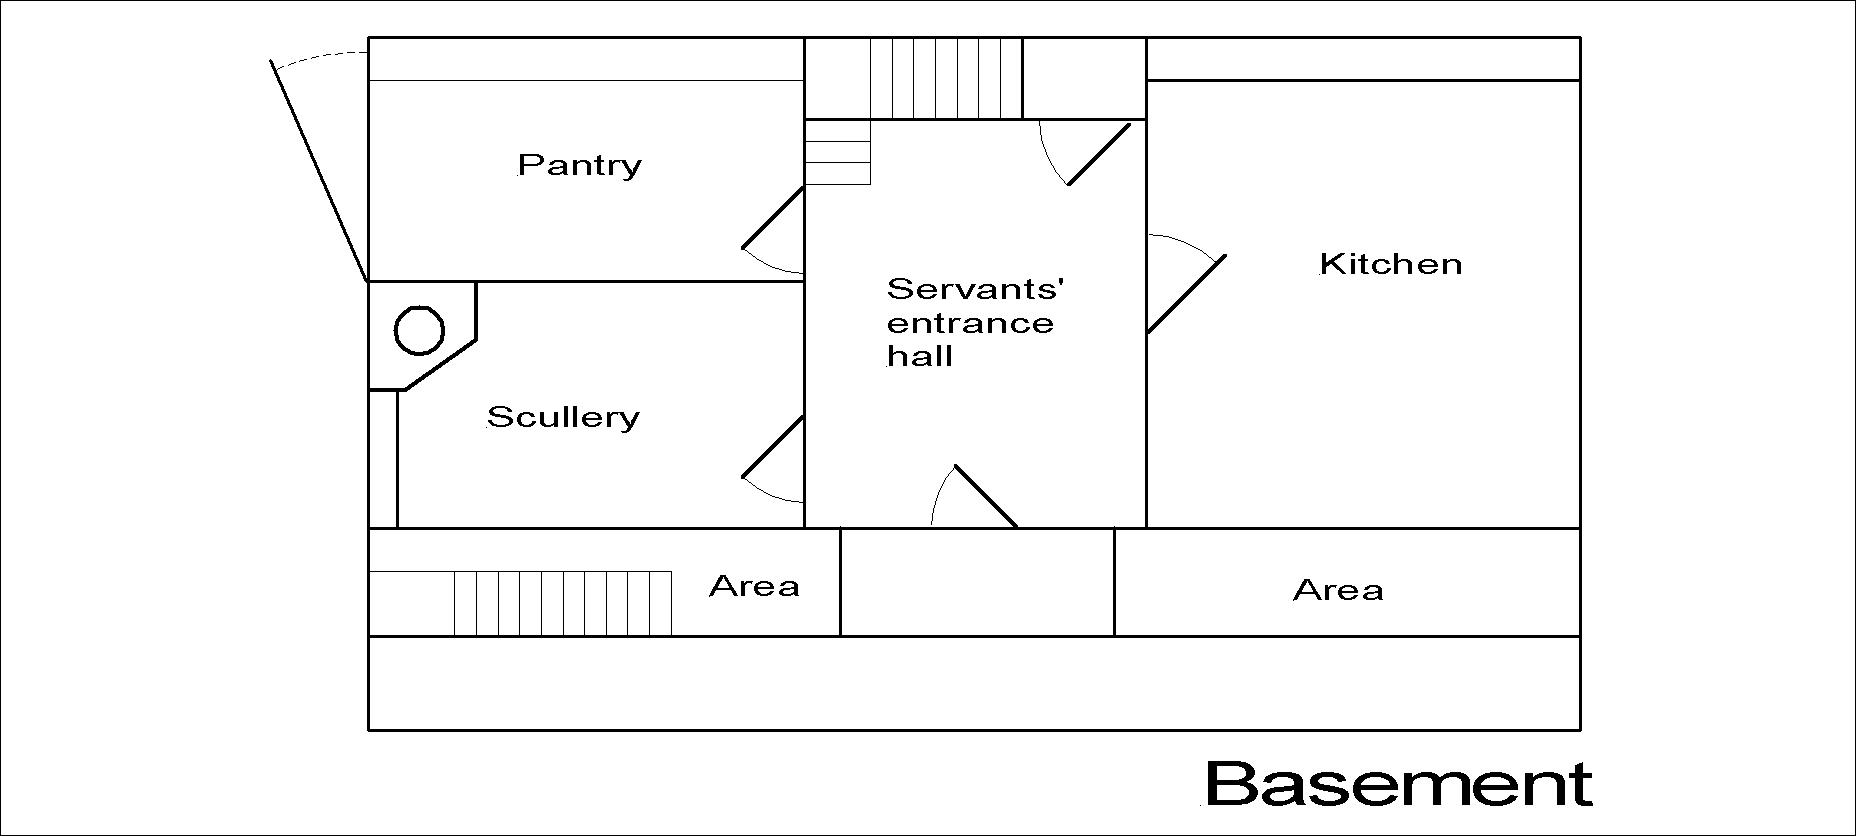 Georgian dolls house basement floor plan.